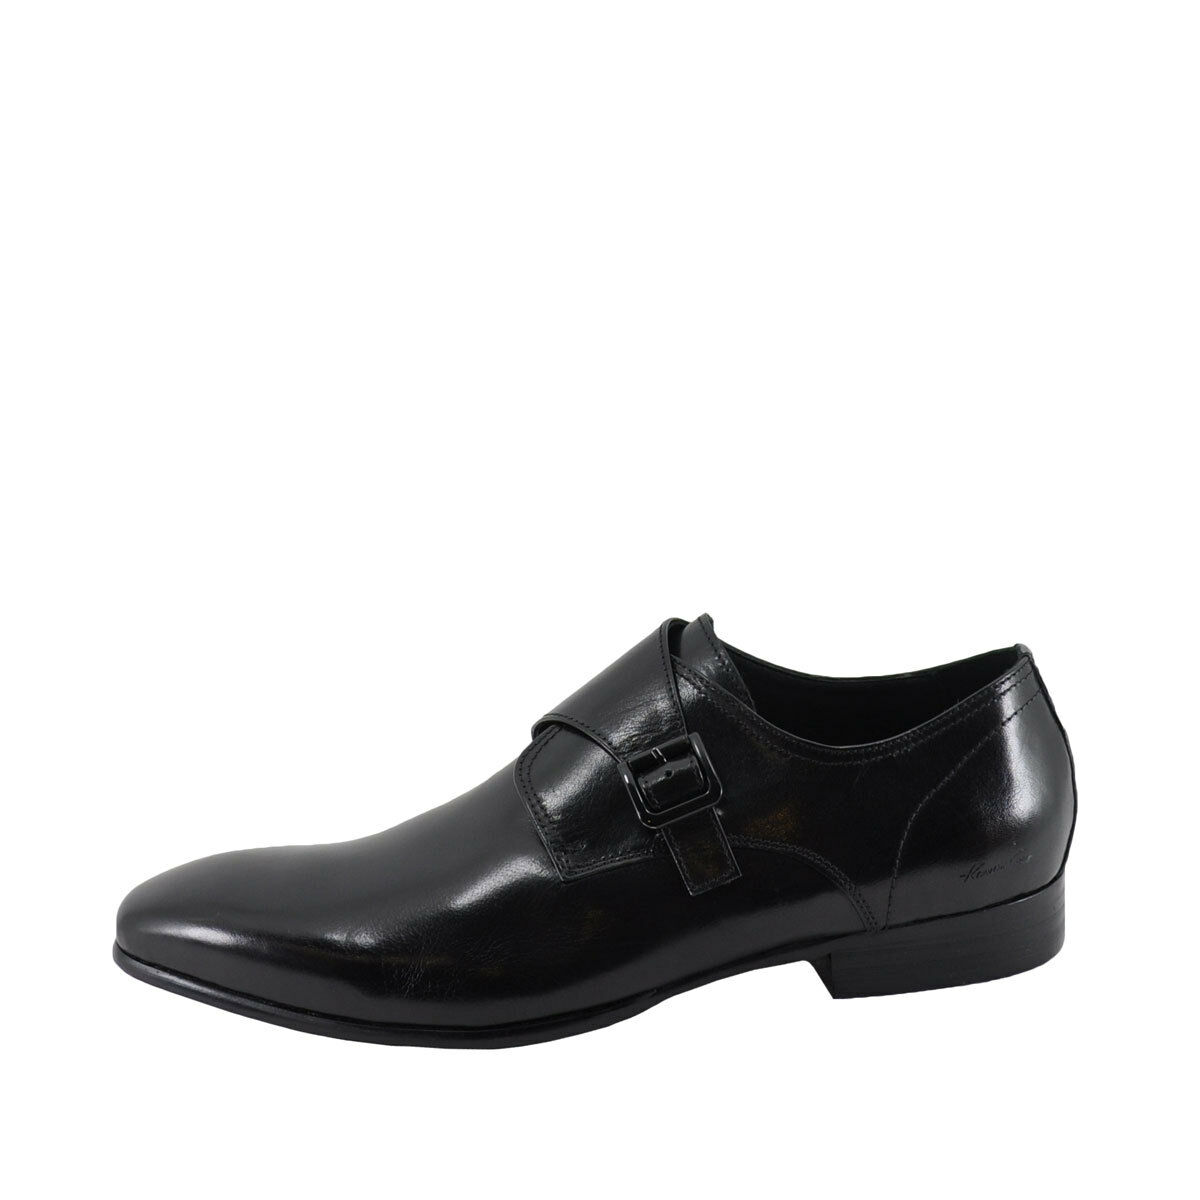 Kenneth Cole New York Well Polished nero Loafers KM60033LE